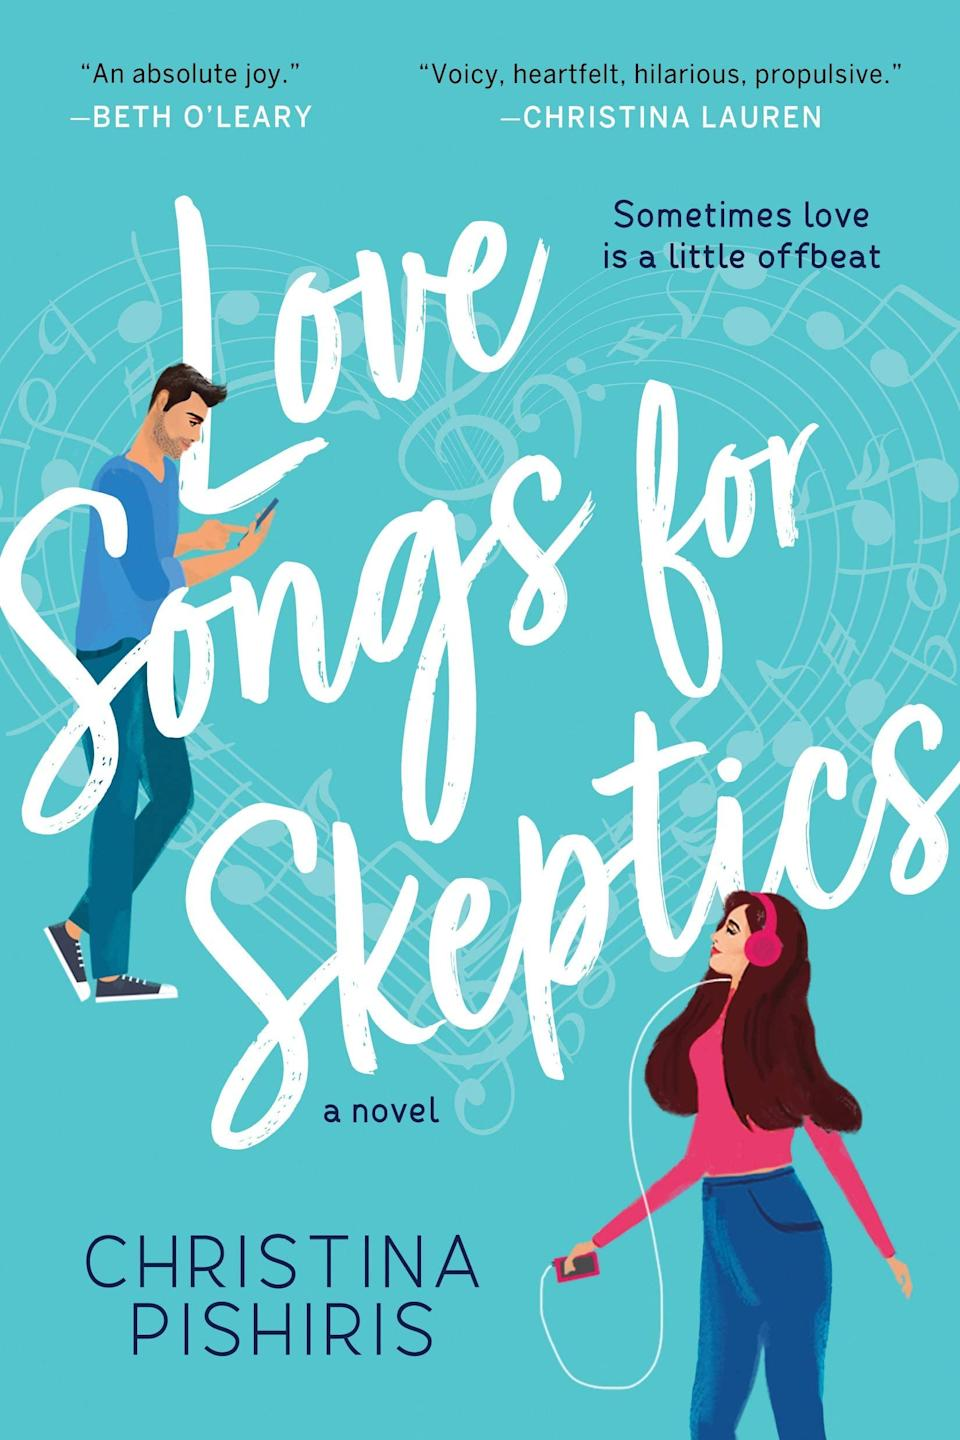 <p>Music plays a central theme in <span><strong>Love Songs For Skeptics</strong> by Christina Pishiris</span> ($15), which follows music journalist Zoë Frixos as she tries to save the struggling music magazine she writes for from going under. The one thing she knows can save them is landing an interview with a reclusive rock idol, and she won't let anything stand in her way - not even the musician's very annoying, very sexy publicist.</p> <p>This is a fast, fun read with lots of personality. The plot is entertaining (there's a lot going on, but in a good way), and the slow-burn romance kept me on my toes - I liked finding some plot developments unexpected, even alongside typical rom-com tropes. And the music theme woven throughout was like the cherry on top! There are a lot of song references throughout, most of them classic throwbacks, and each chapter is a song title!</p>